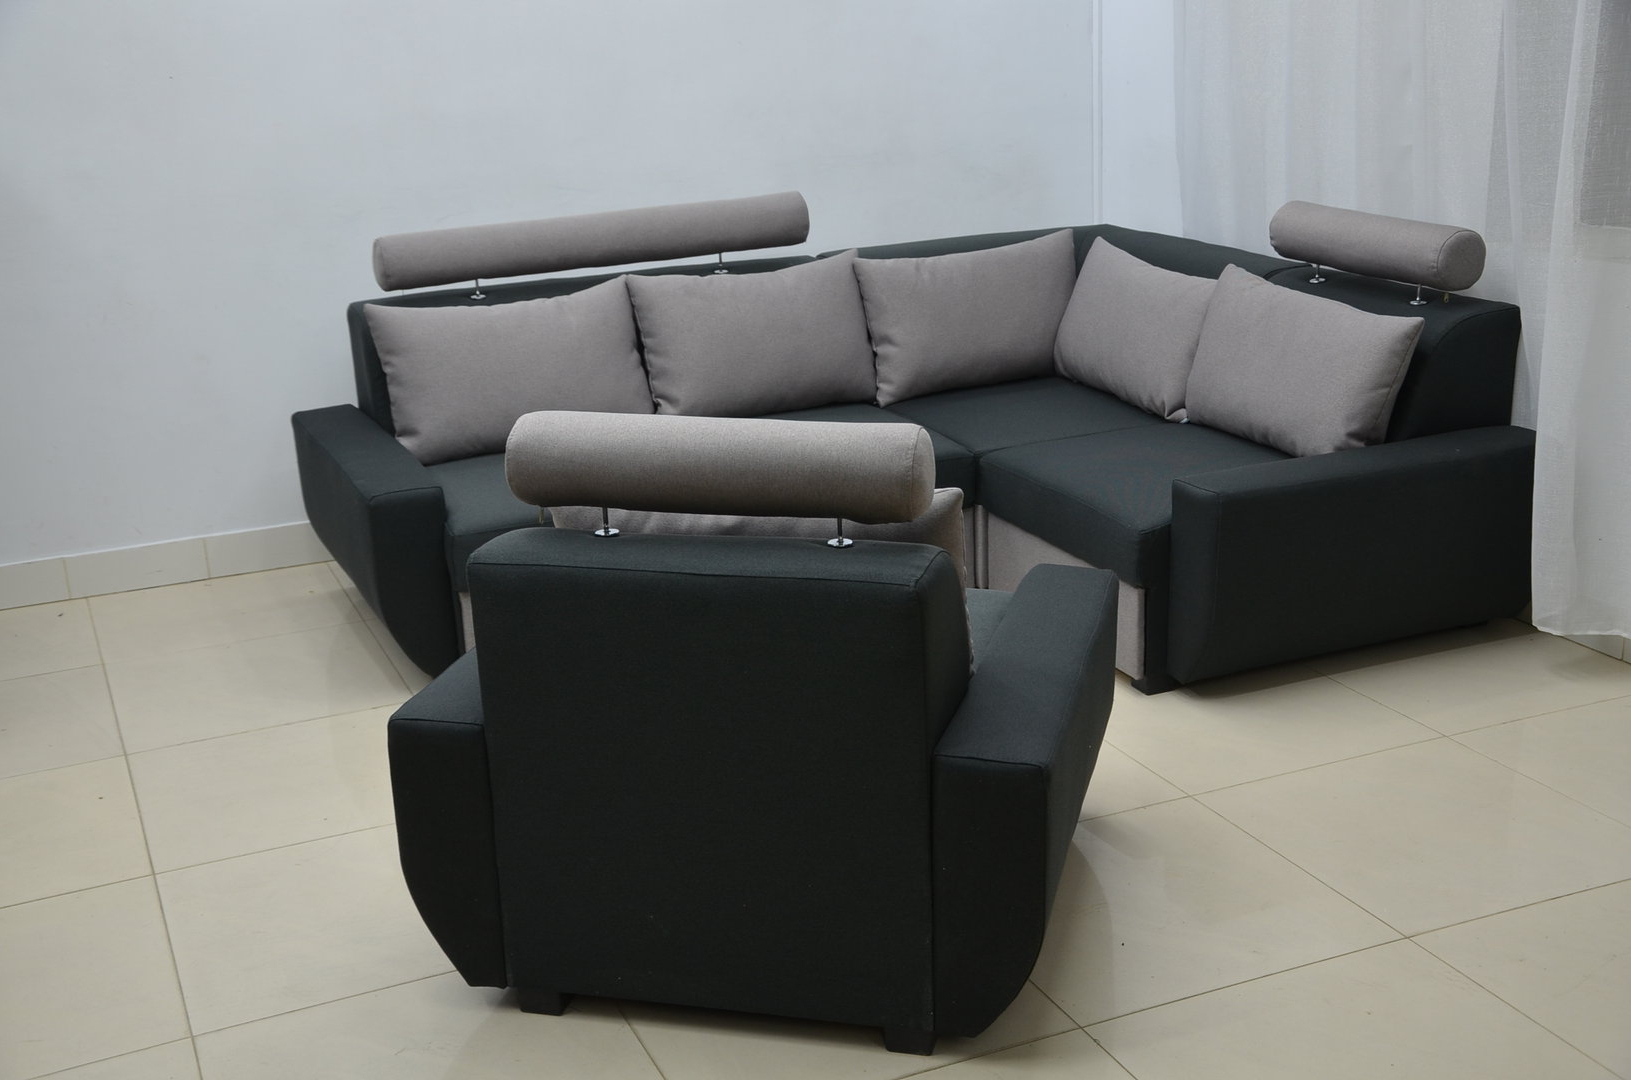 Most Popular Single Chair Sofa Bed Throughout Corner Sofa Bed Mood With Single Chair, Twill Black / Grey (View 17 of 20)